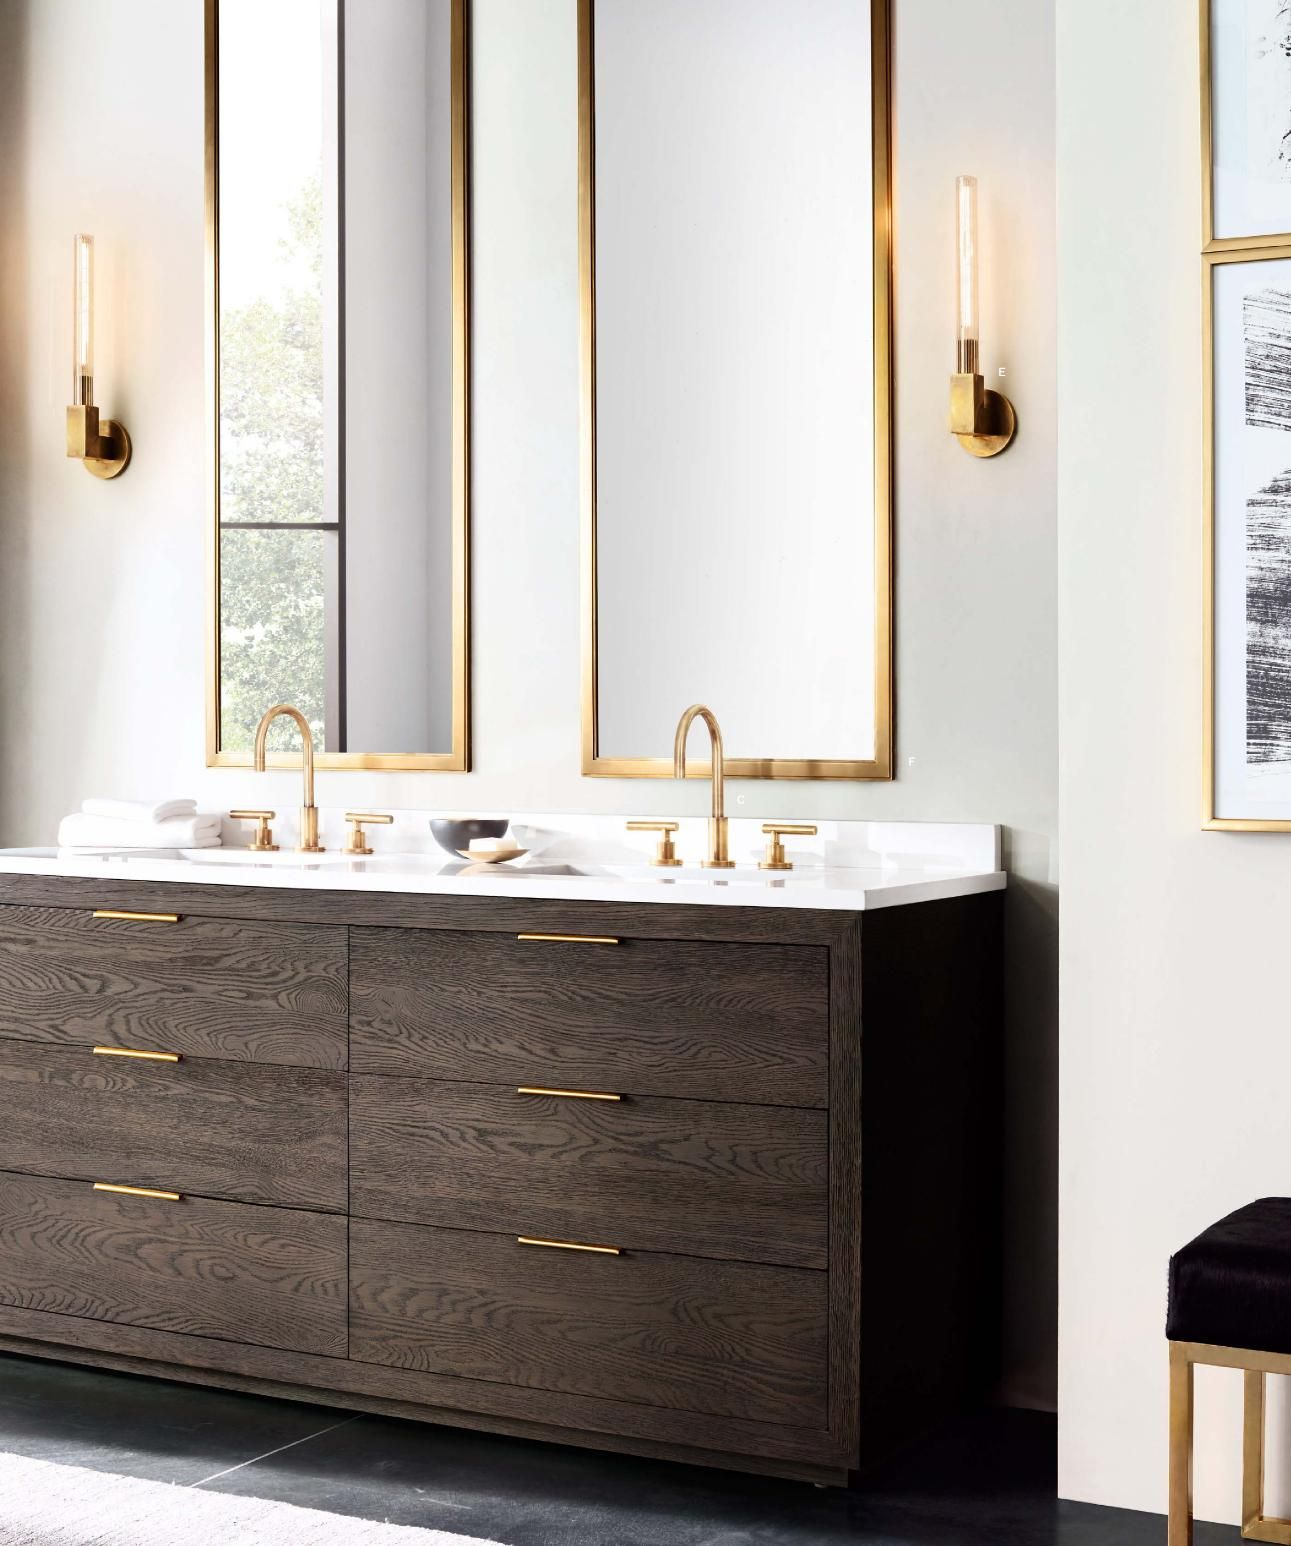 Rh Source Books Mirrors And Sconces Luxury Bathroom Vanities Modern Bathroom Vanity Bathroom Design